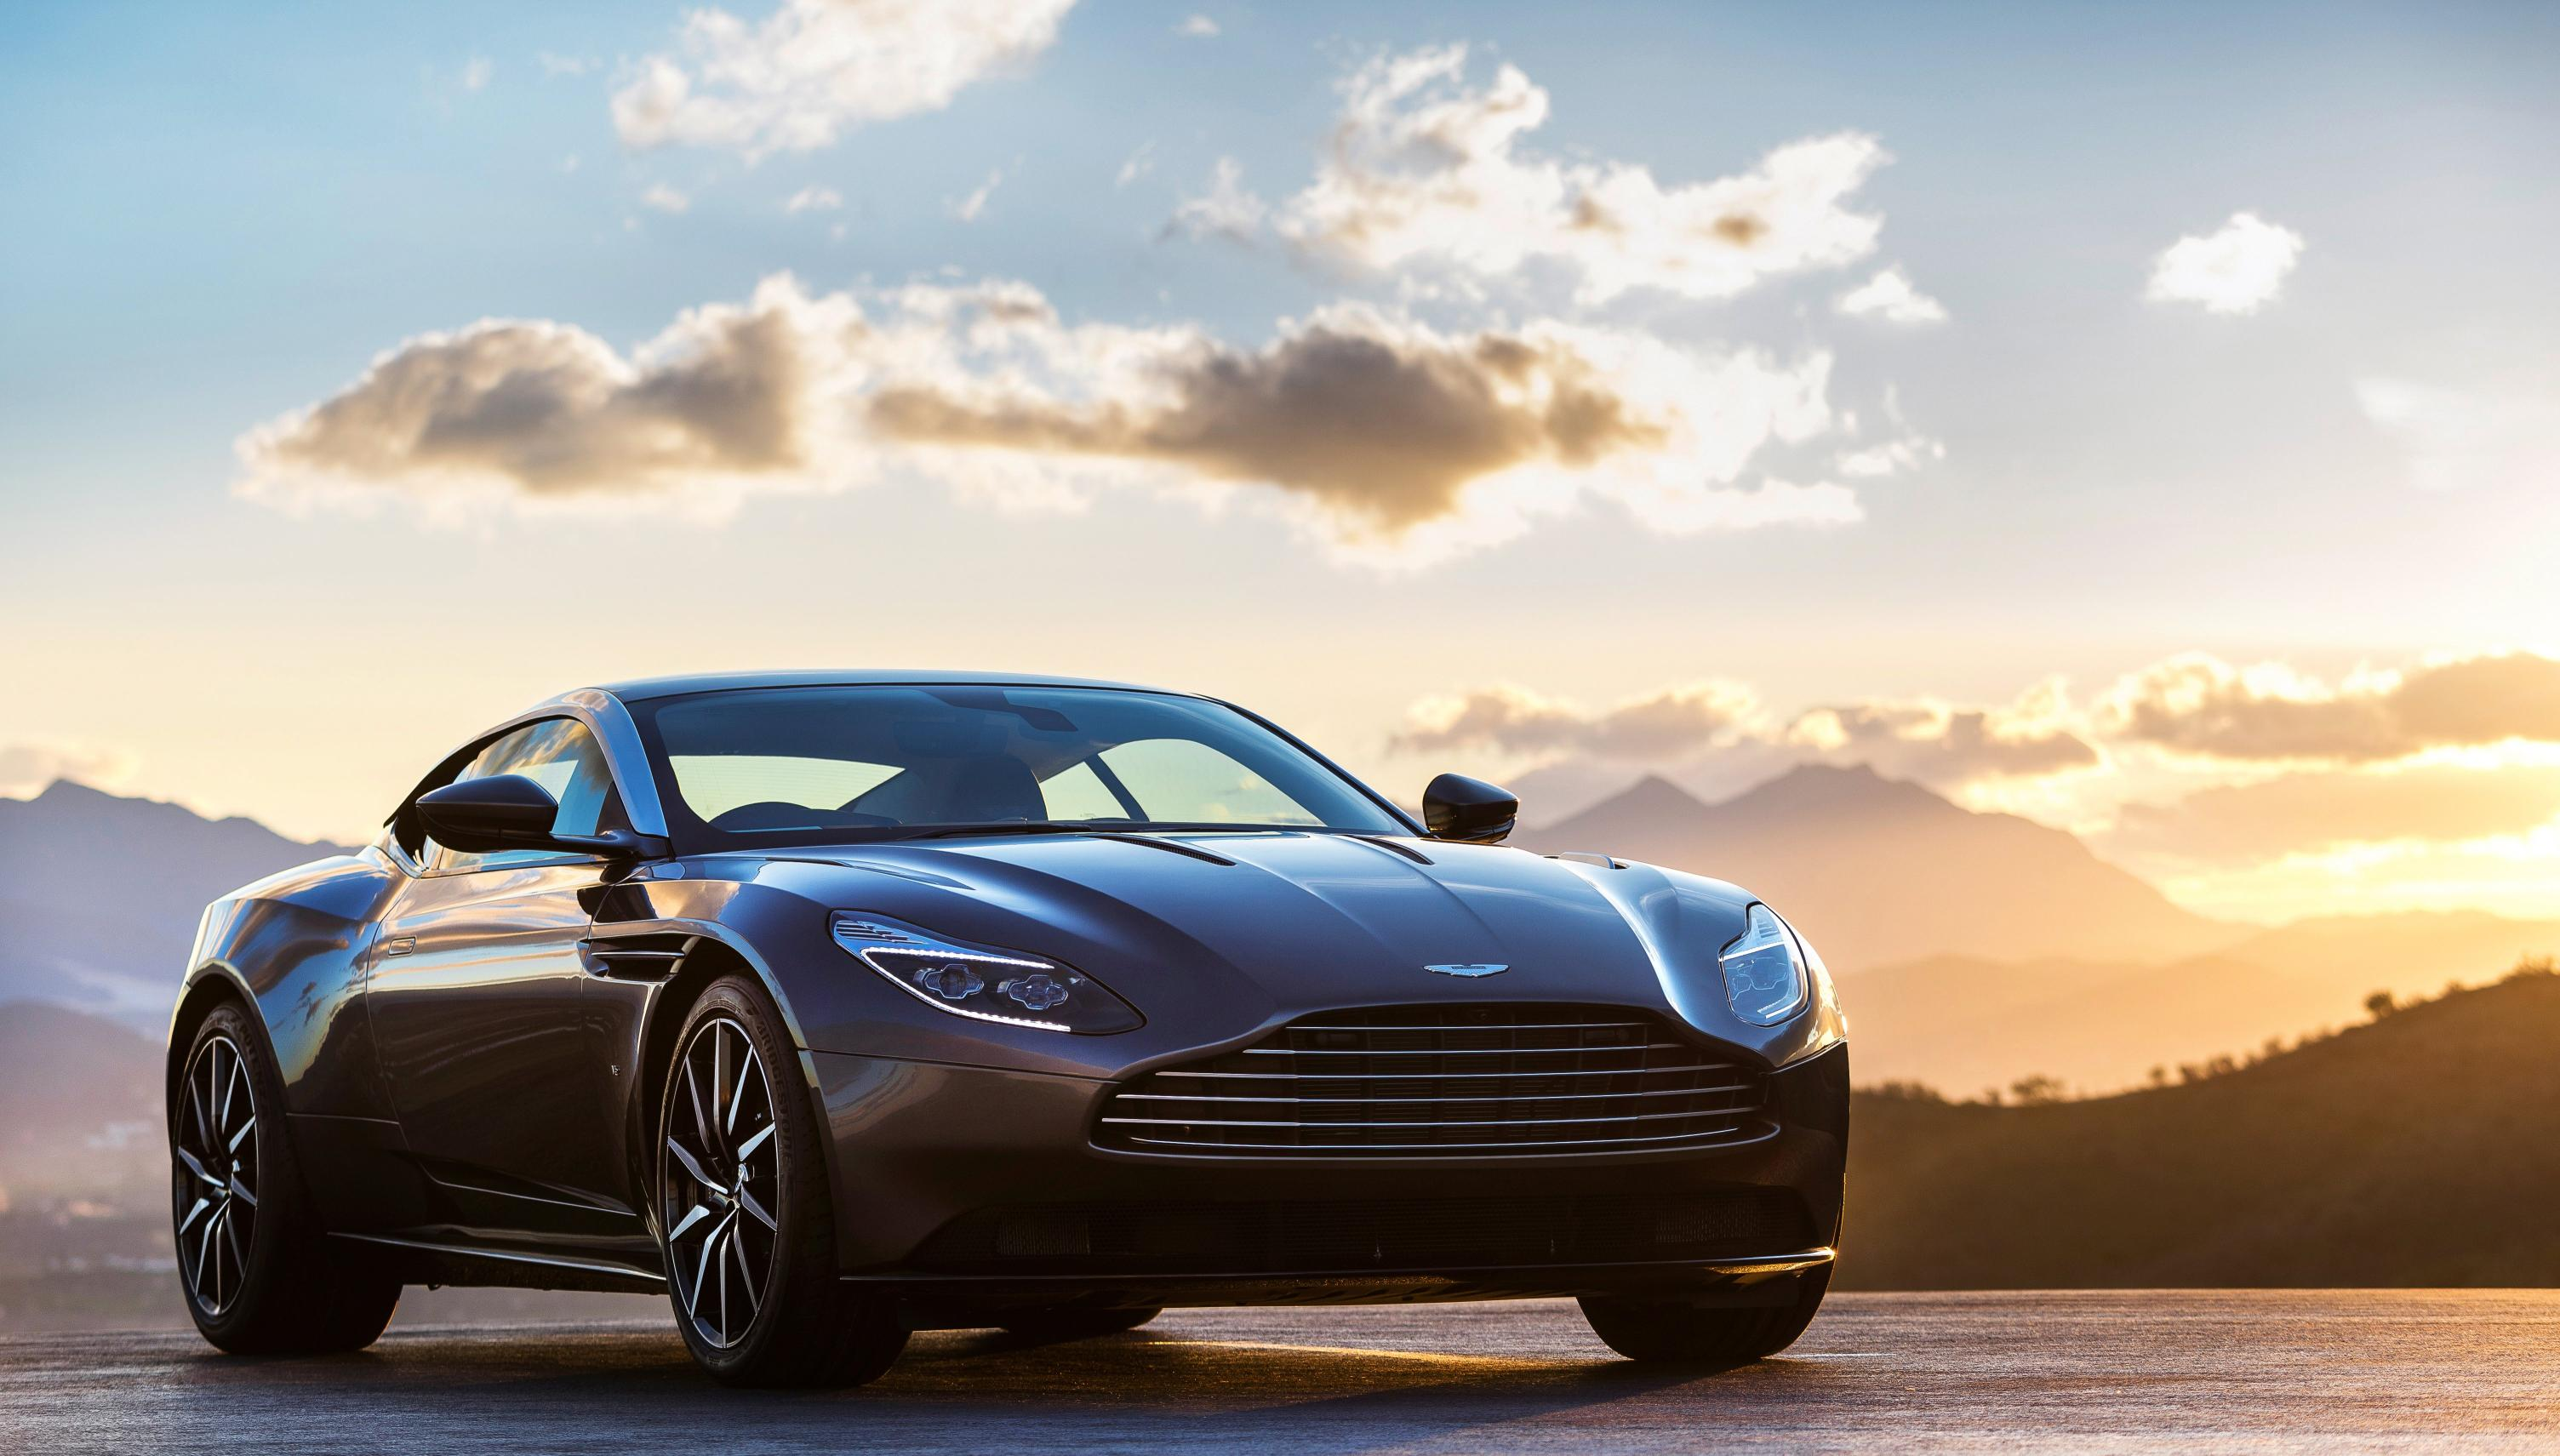 The New Aston Martin DB Is Stunning - Lease aston martin